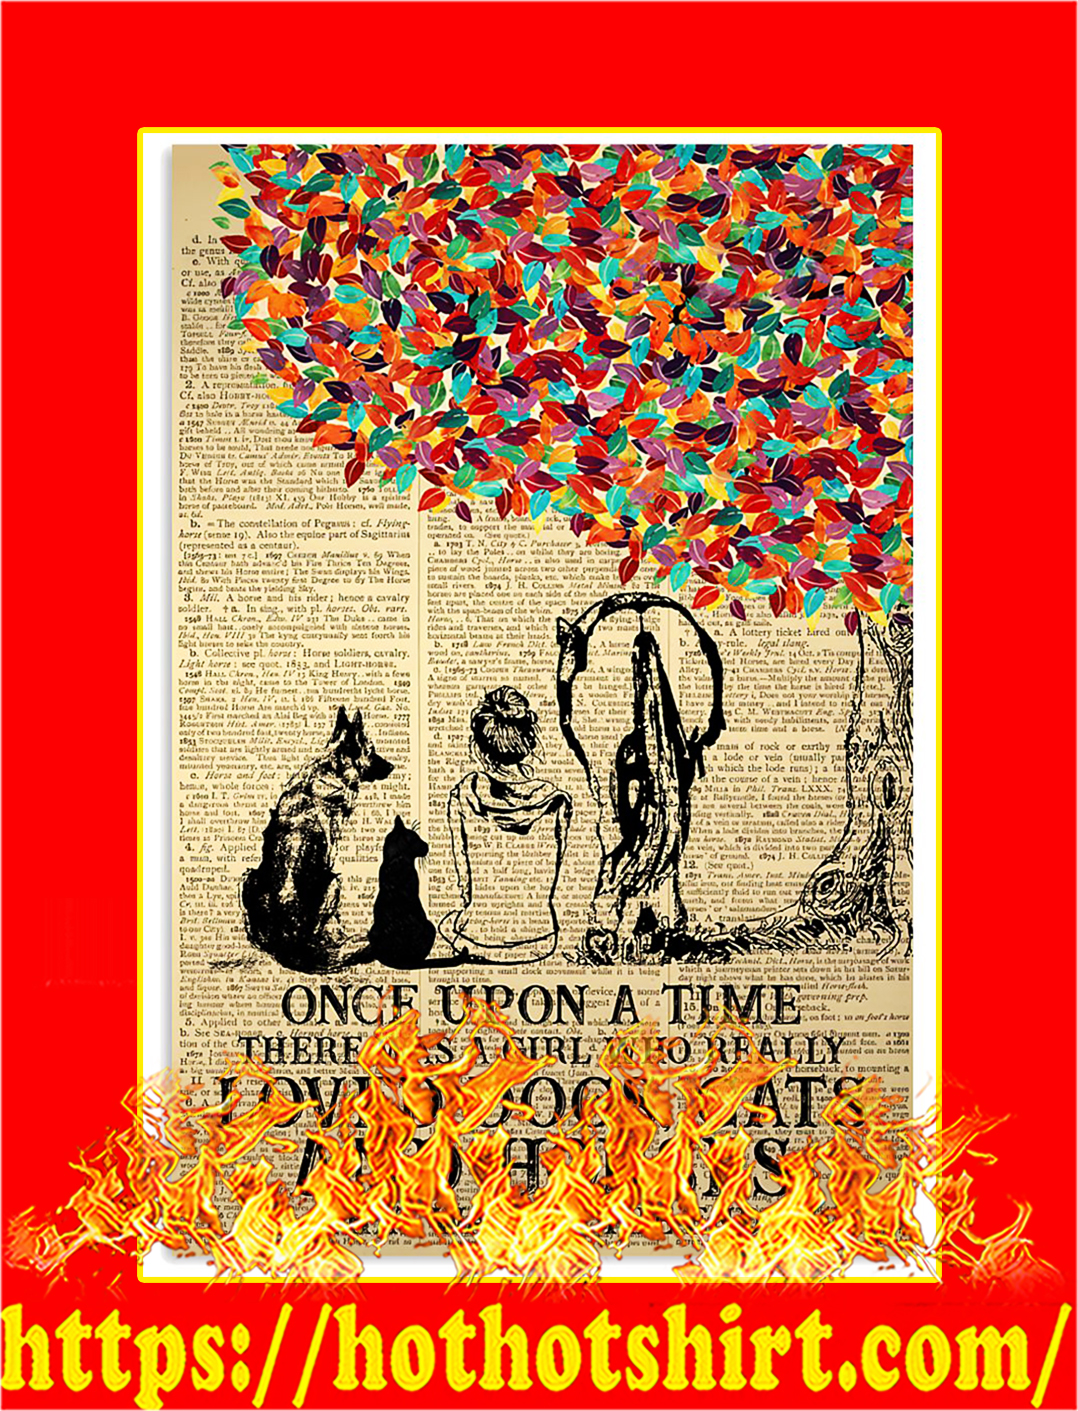 Once upon a time there was a girl who really loved dogs cats and horses poster - A2